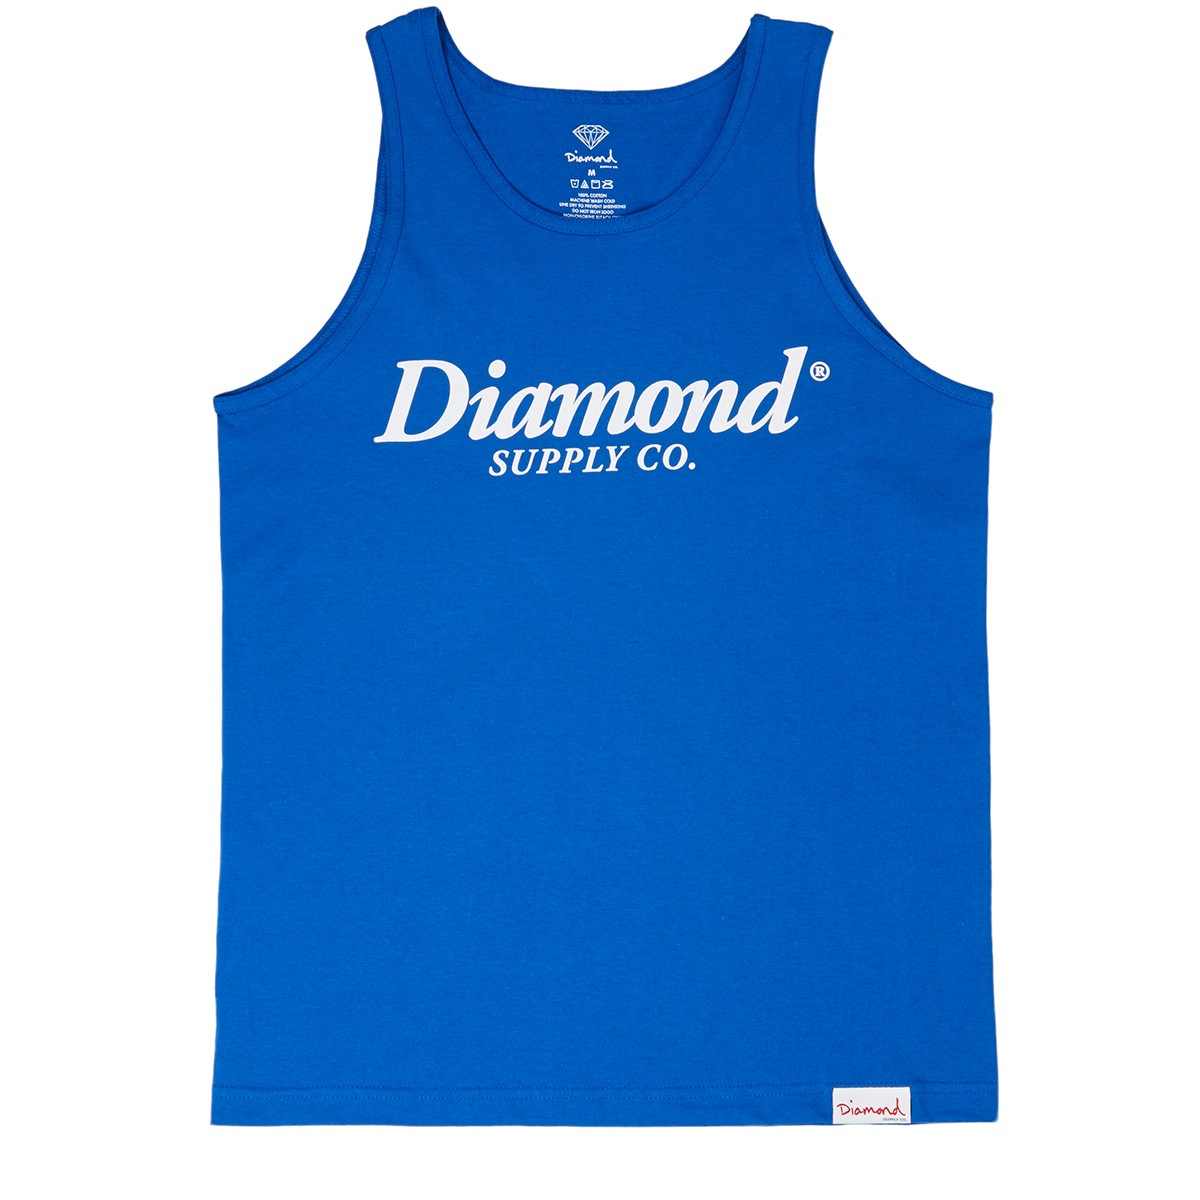 Diamond Supply Co. Typeset Tank Top - Royal Blue